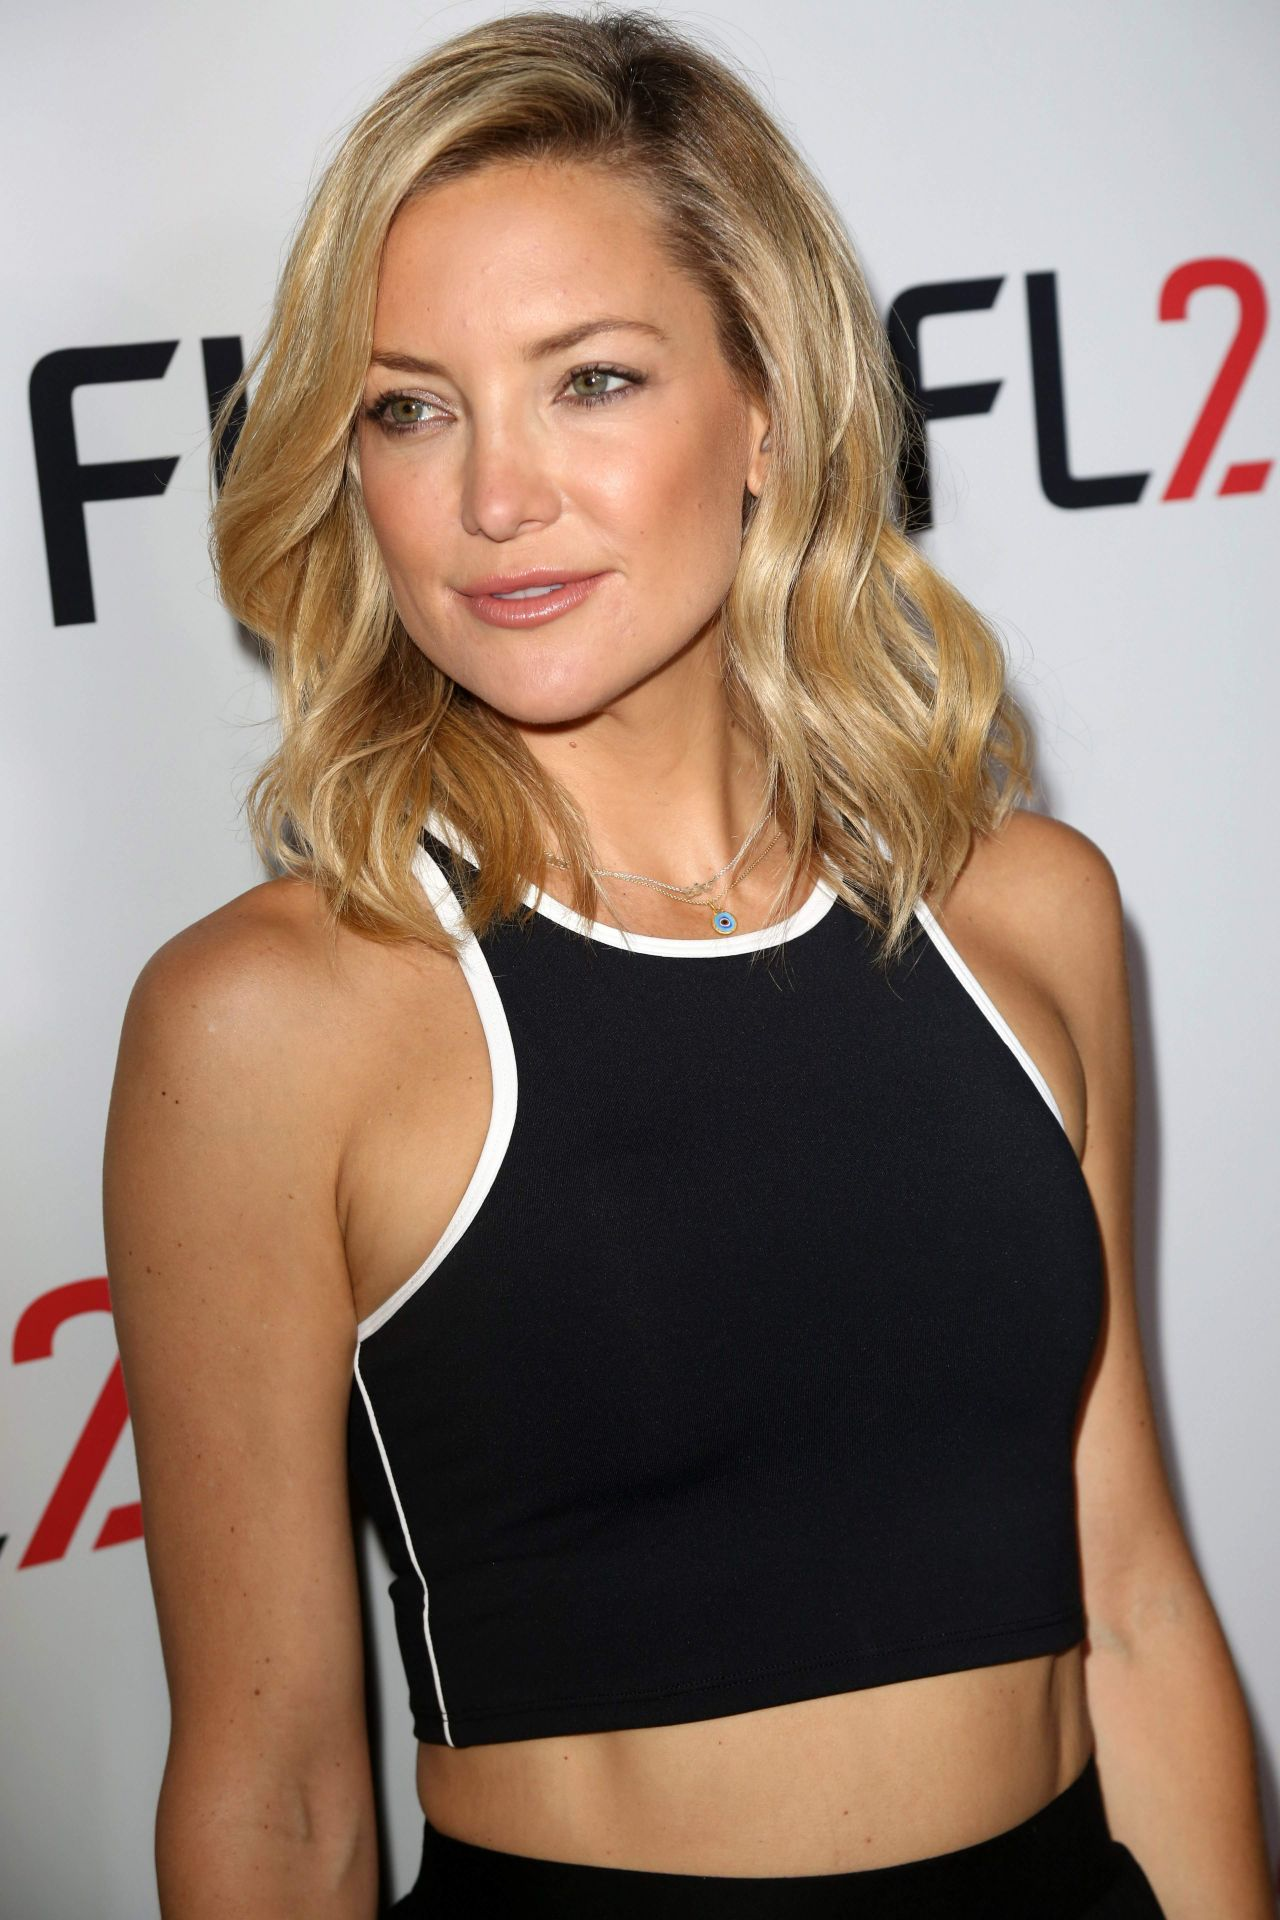 Kate Hudson Fl2 Mens Active Wear Collection Launch In Ny